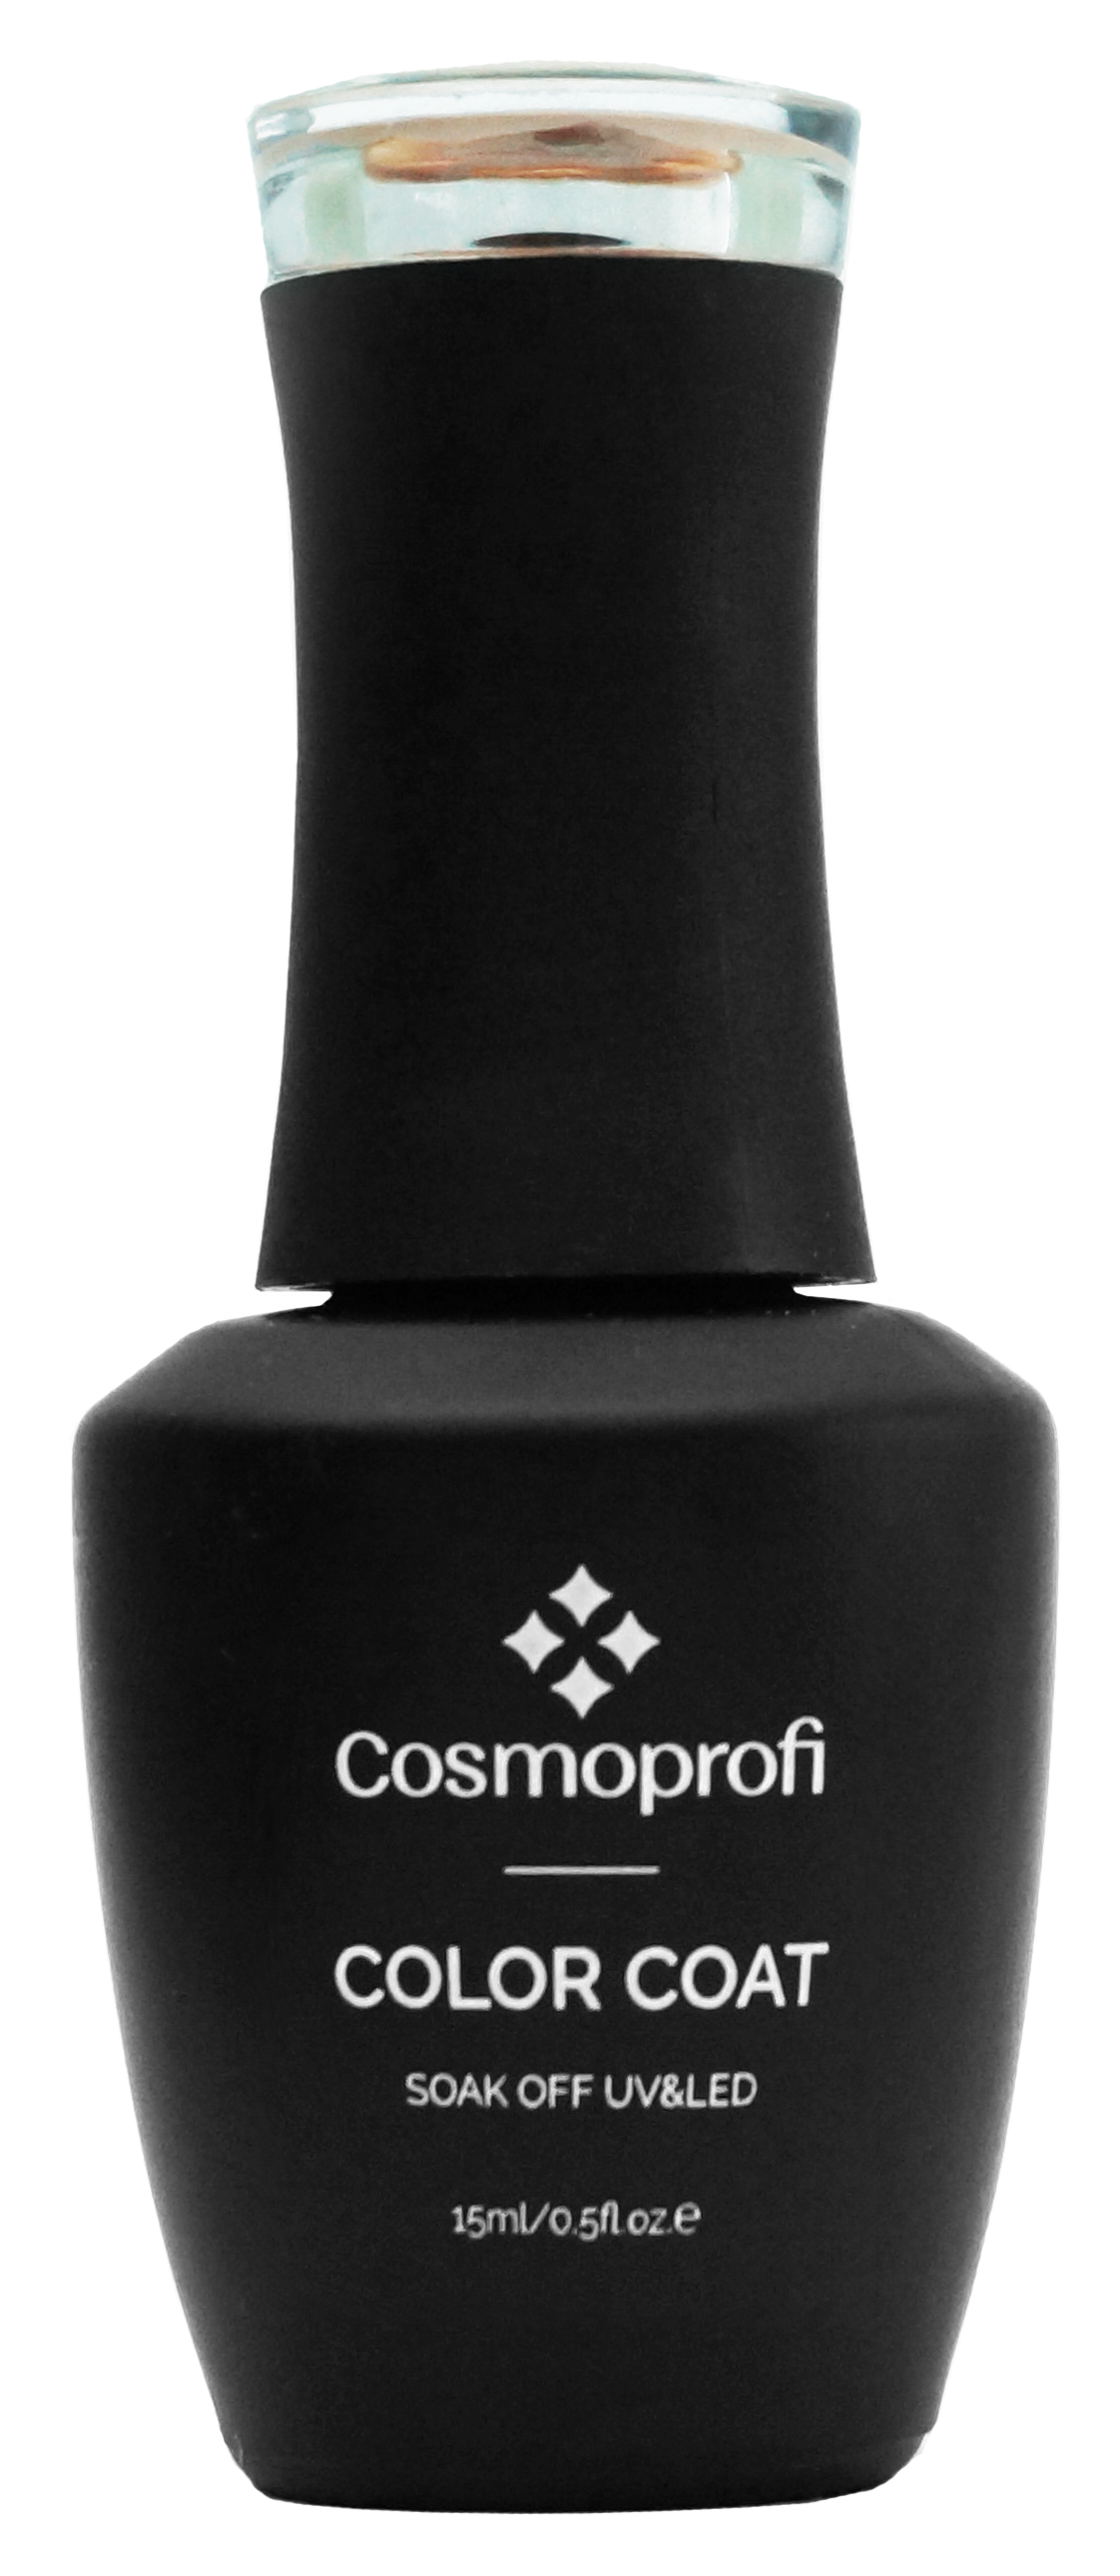 Гель-лак Cosmoprofi, Color coat № 32, 15 мл